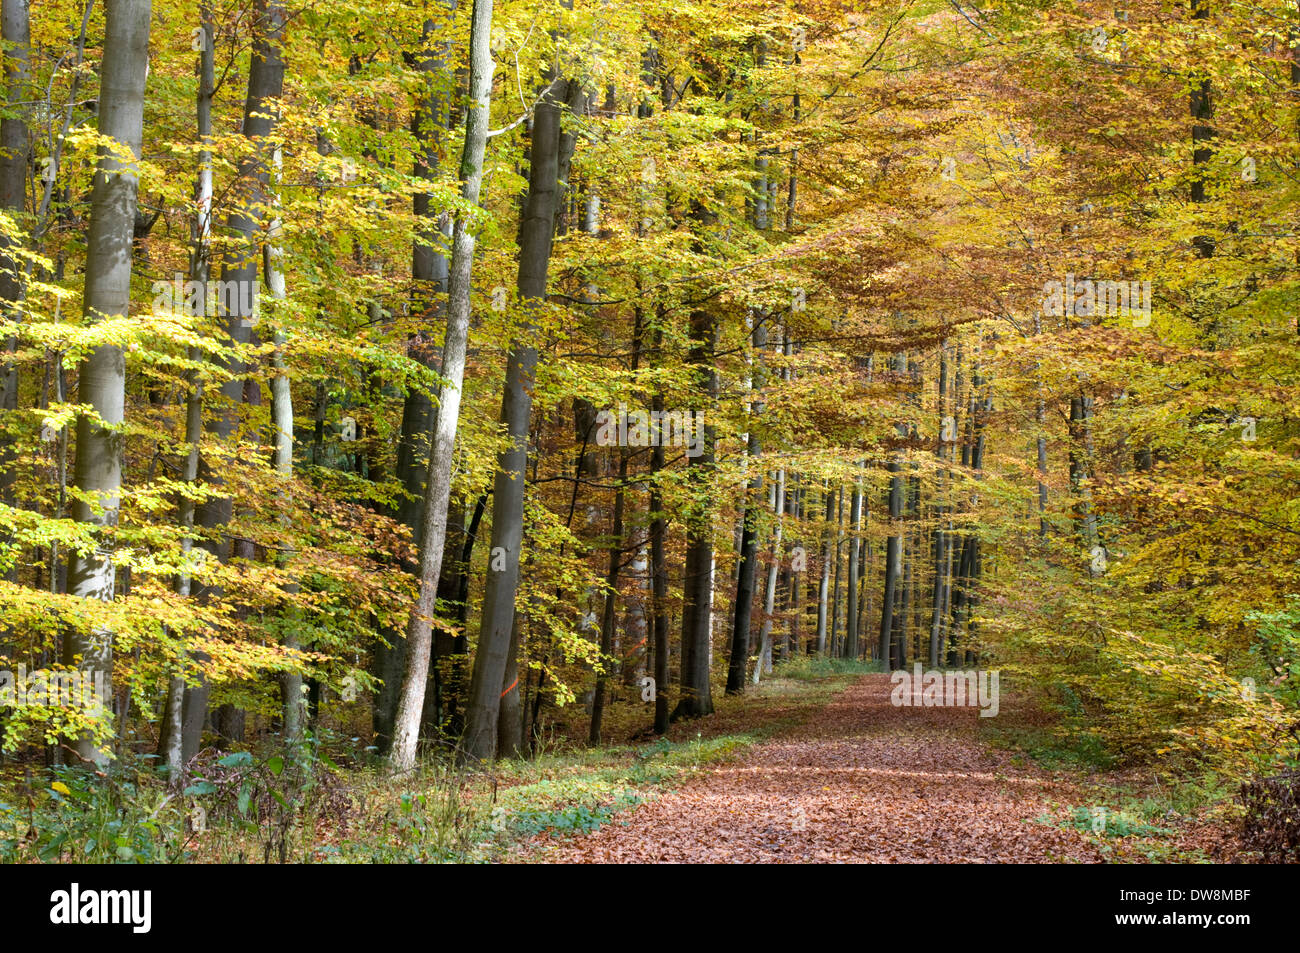 Beech forest - Stock Image